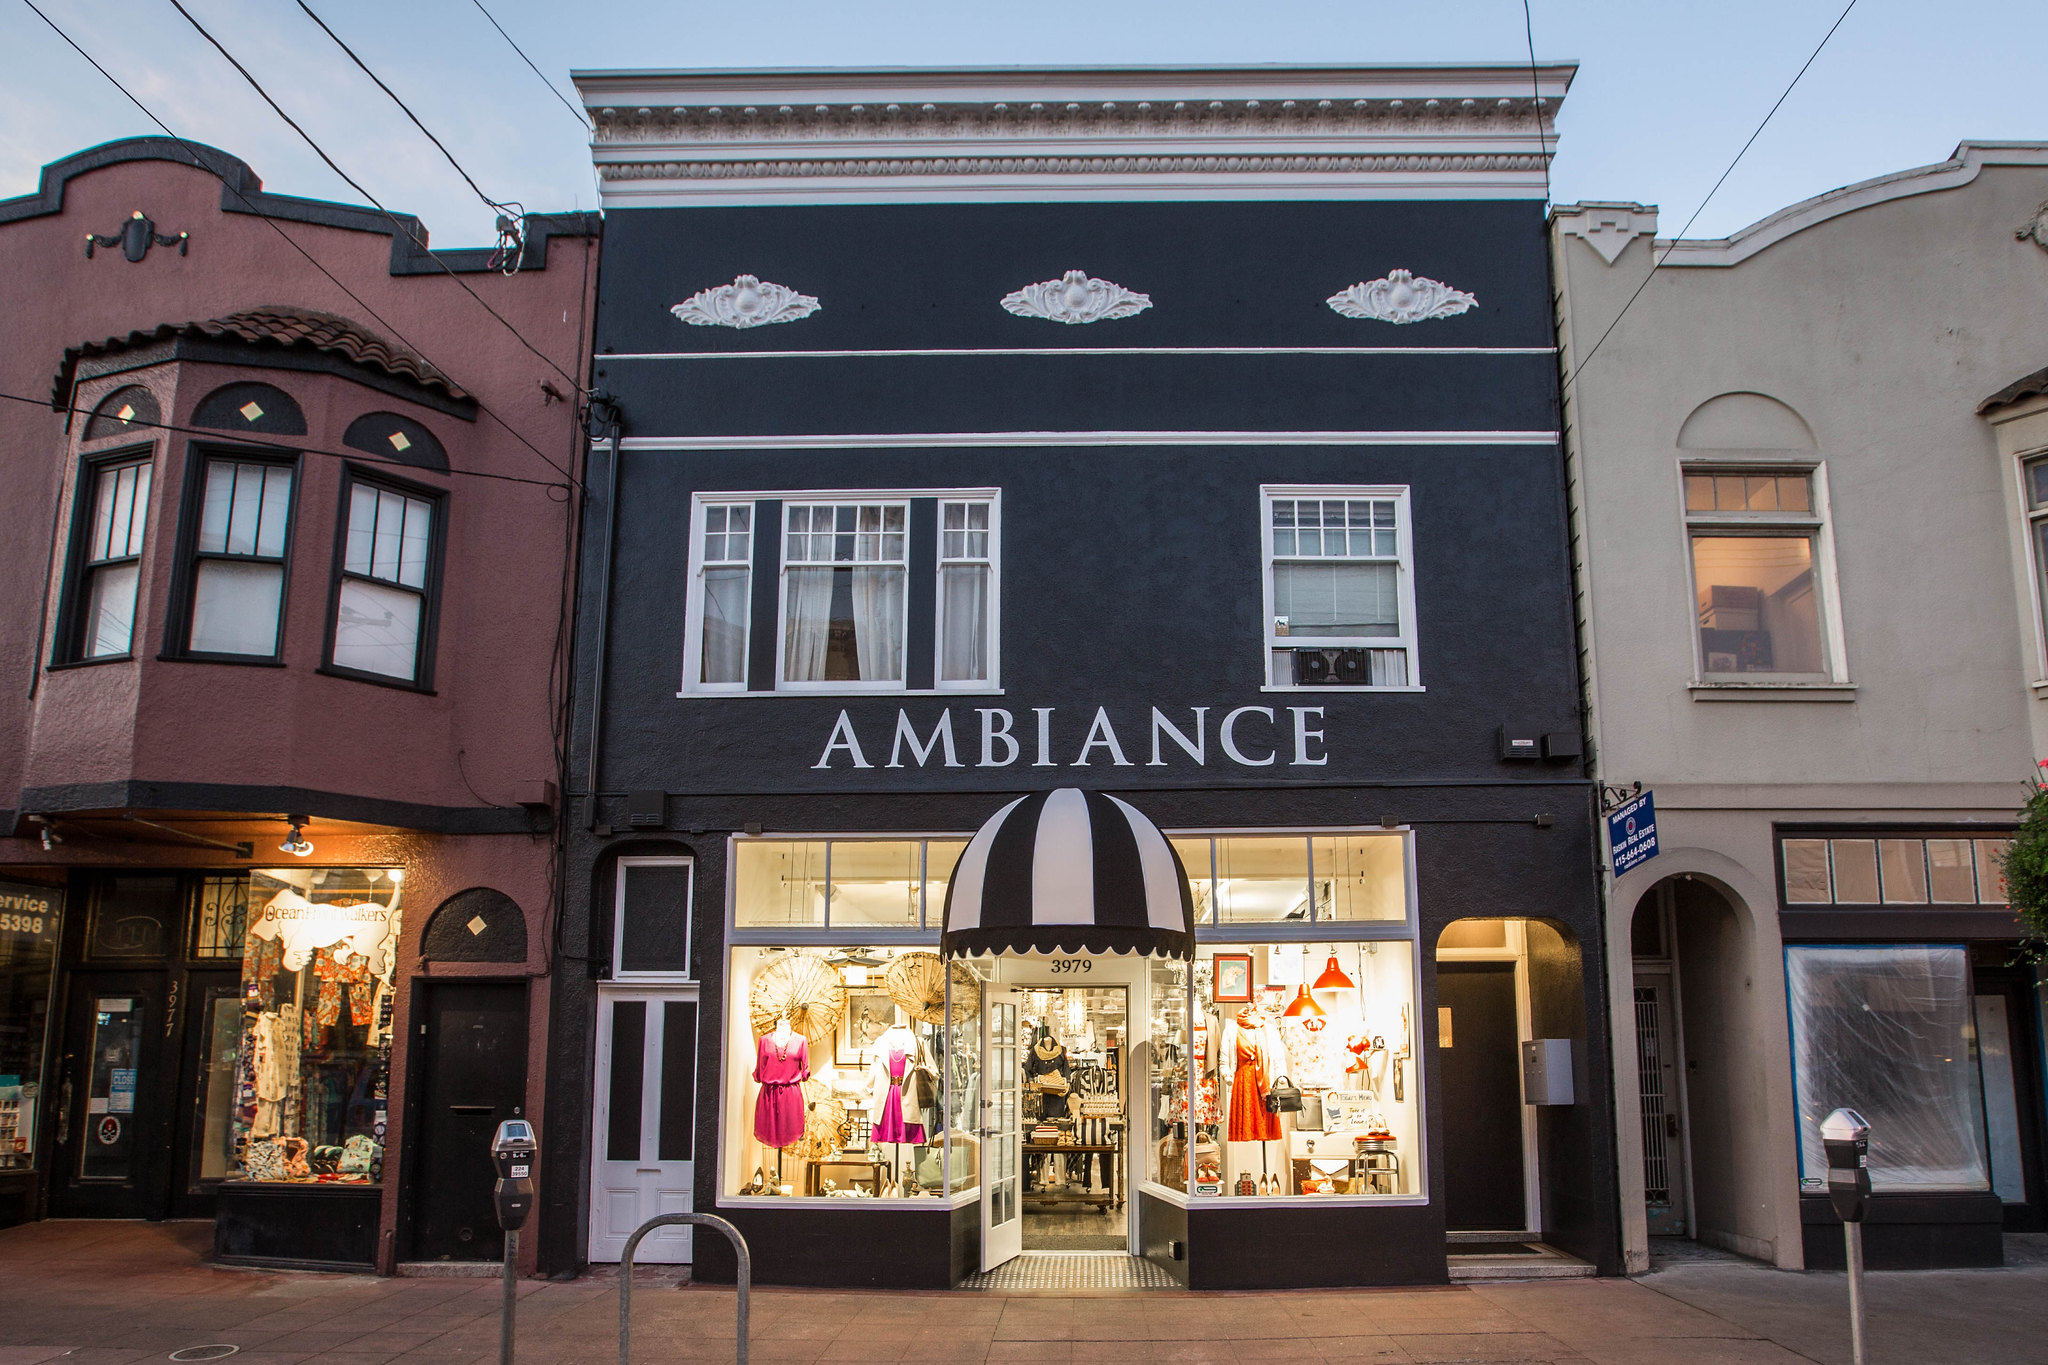 Ambiance SF on 24th Street - photo by Justin Schuck under CC BY-ND 2.0